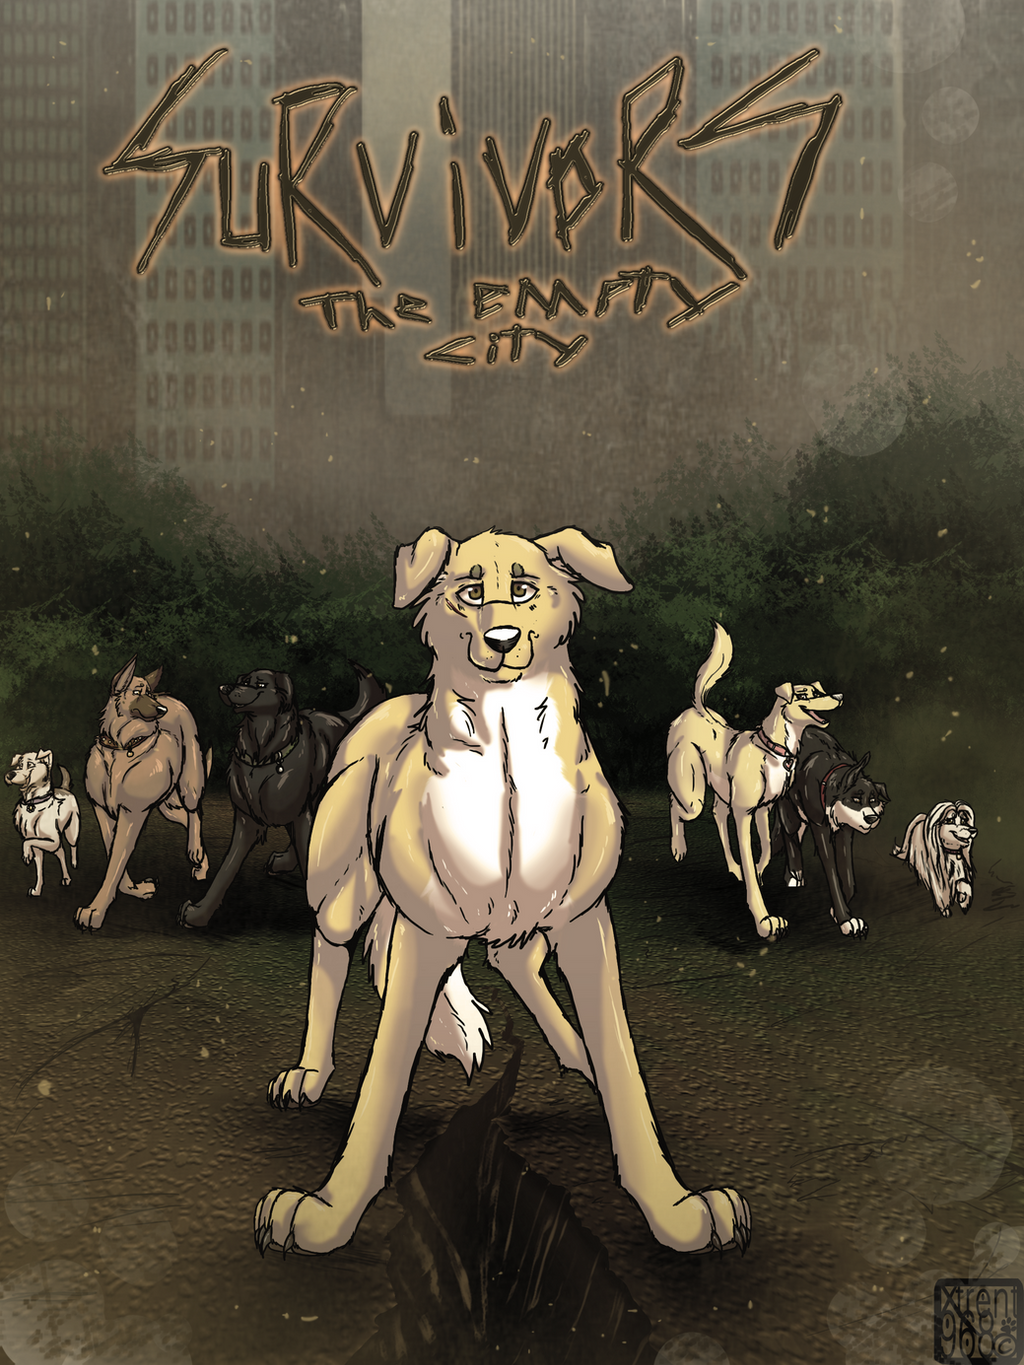 Survivors The Empty City Graphic Novel Cover By